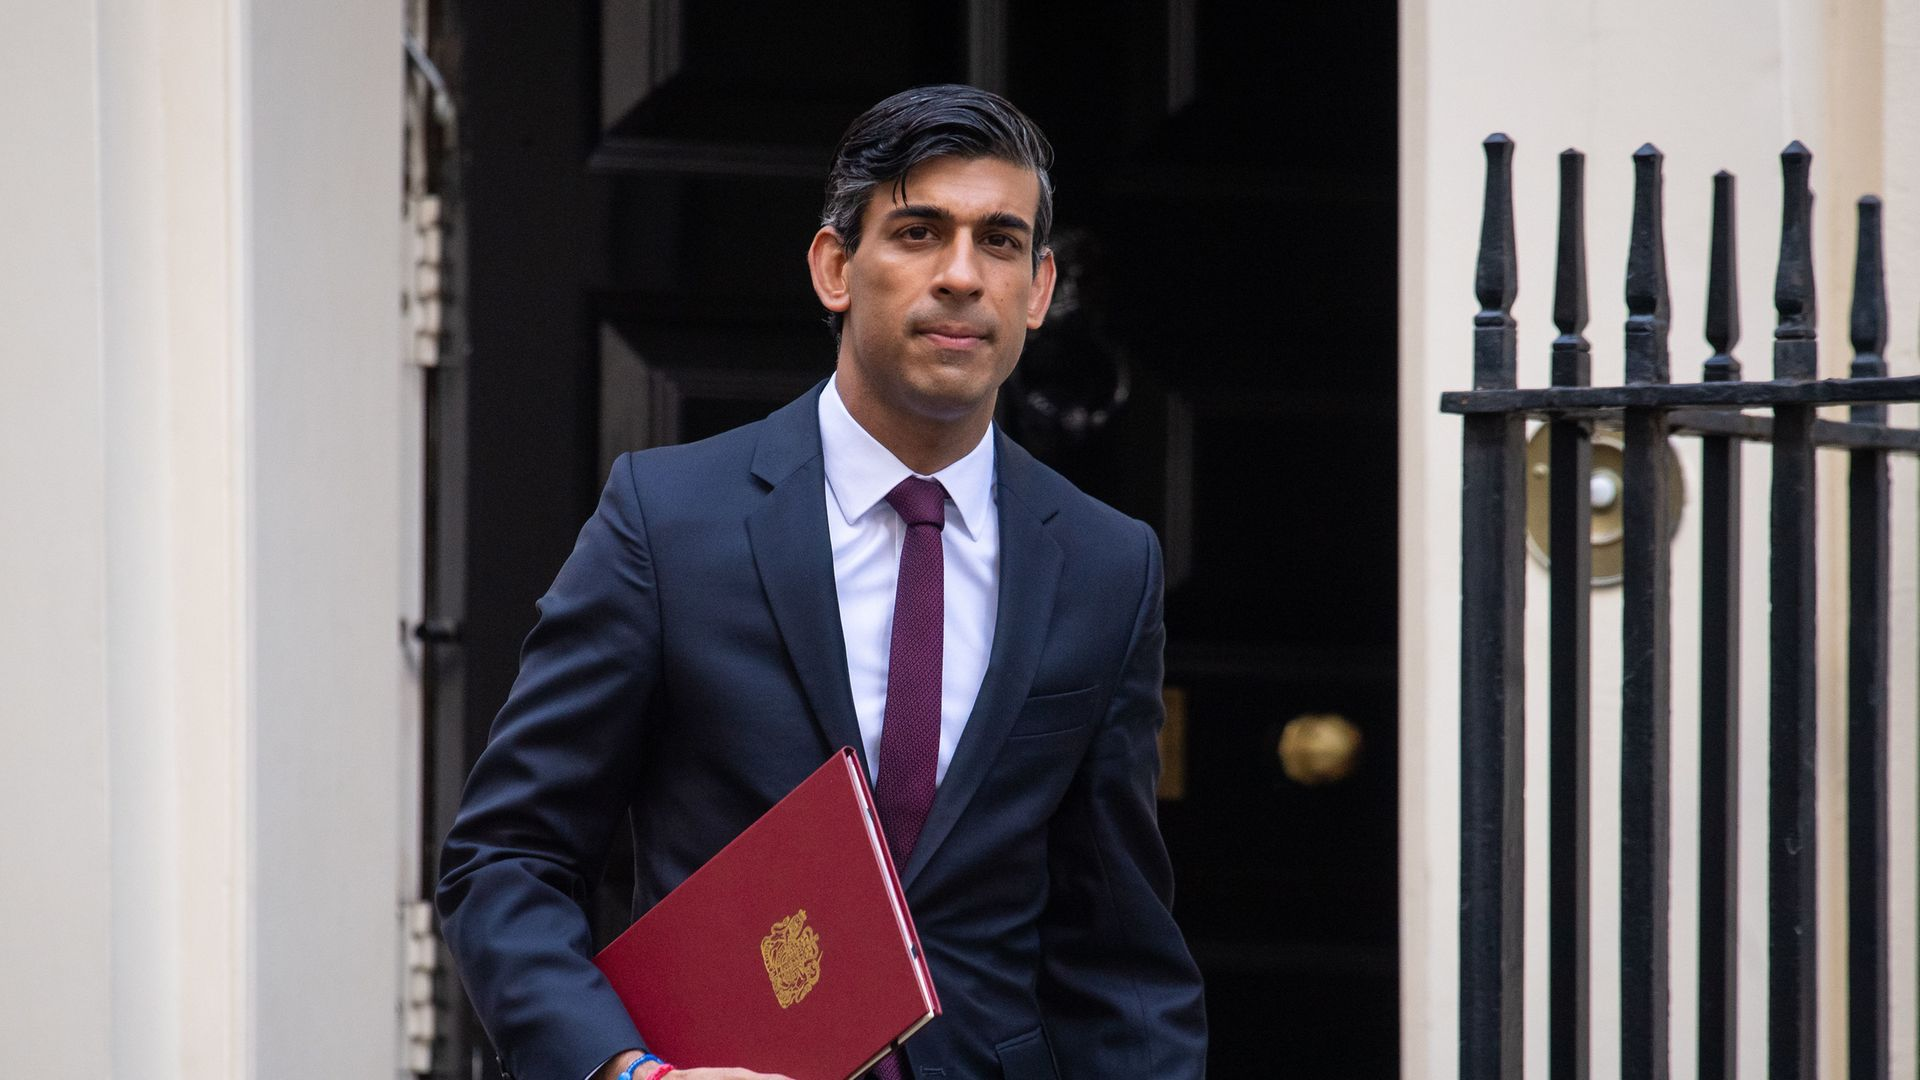 Chancellor of the Exchequer Rishi Sunak leaves No 11 Downing Street for the House of Commons to give MPs details of his Winter Economy Plan. - Credit: PA